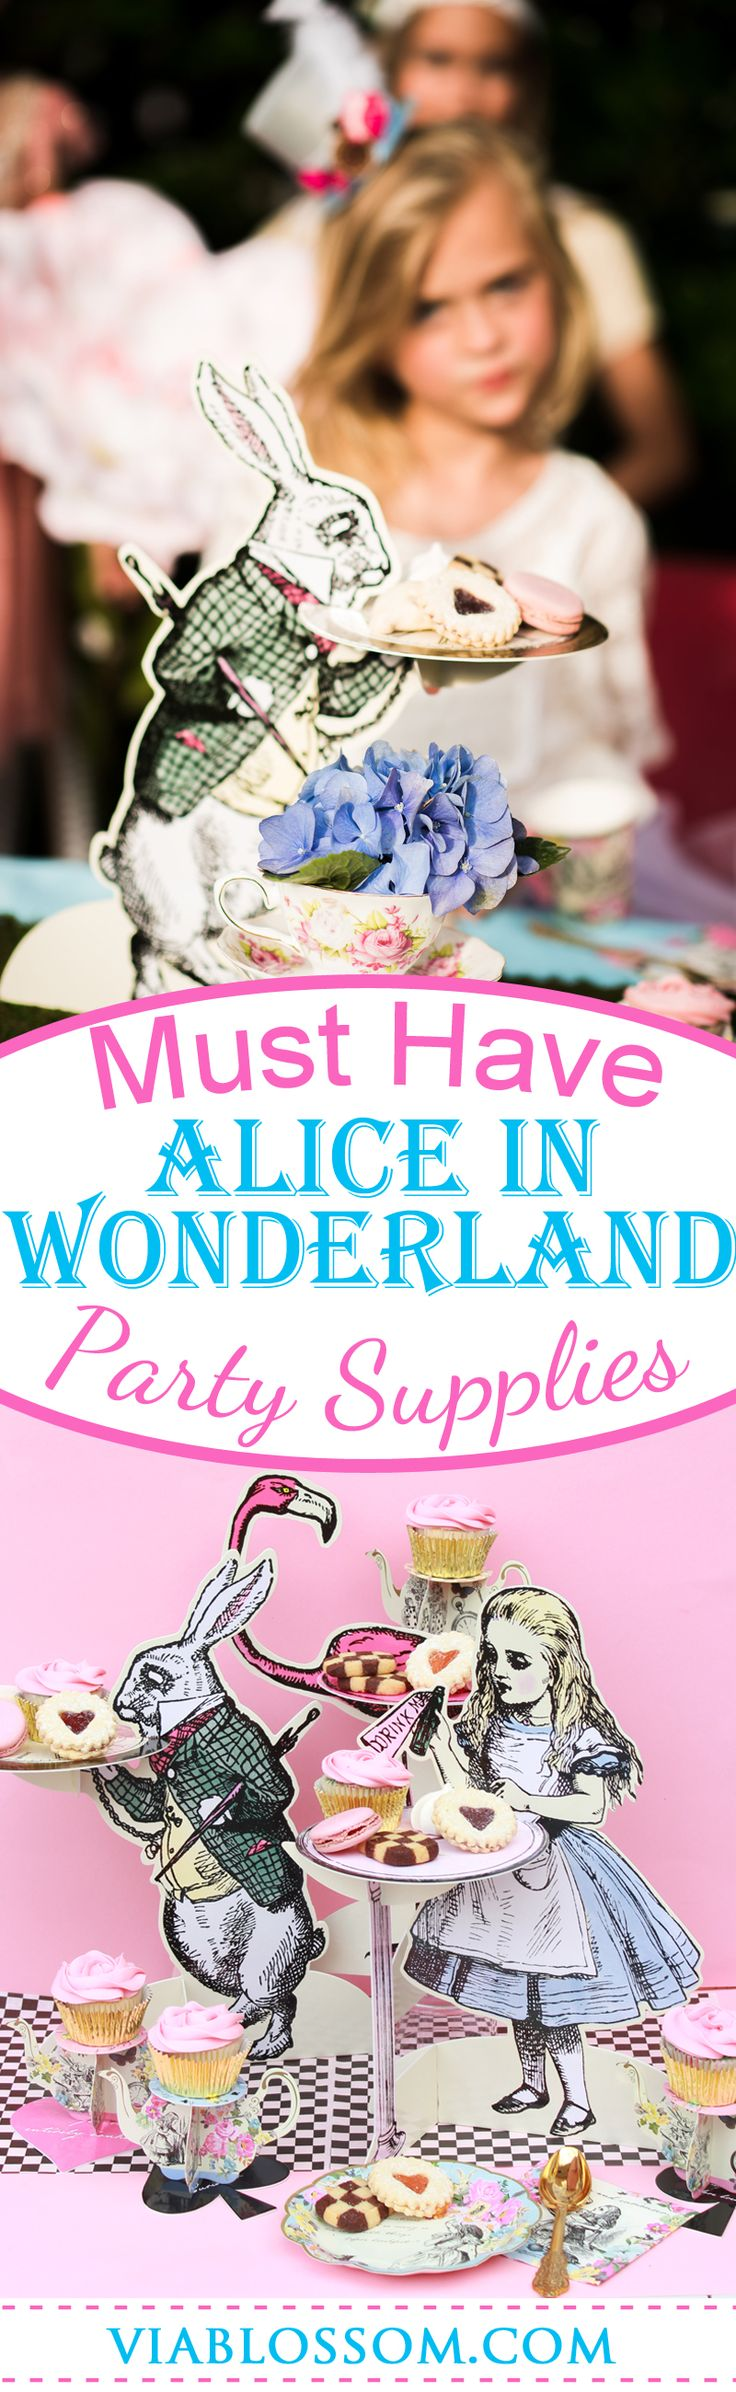 Must have Alice in Wonderland Party Ideas